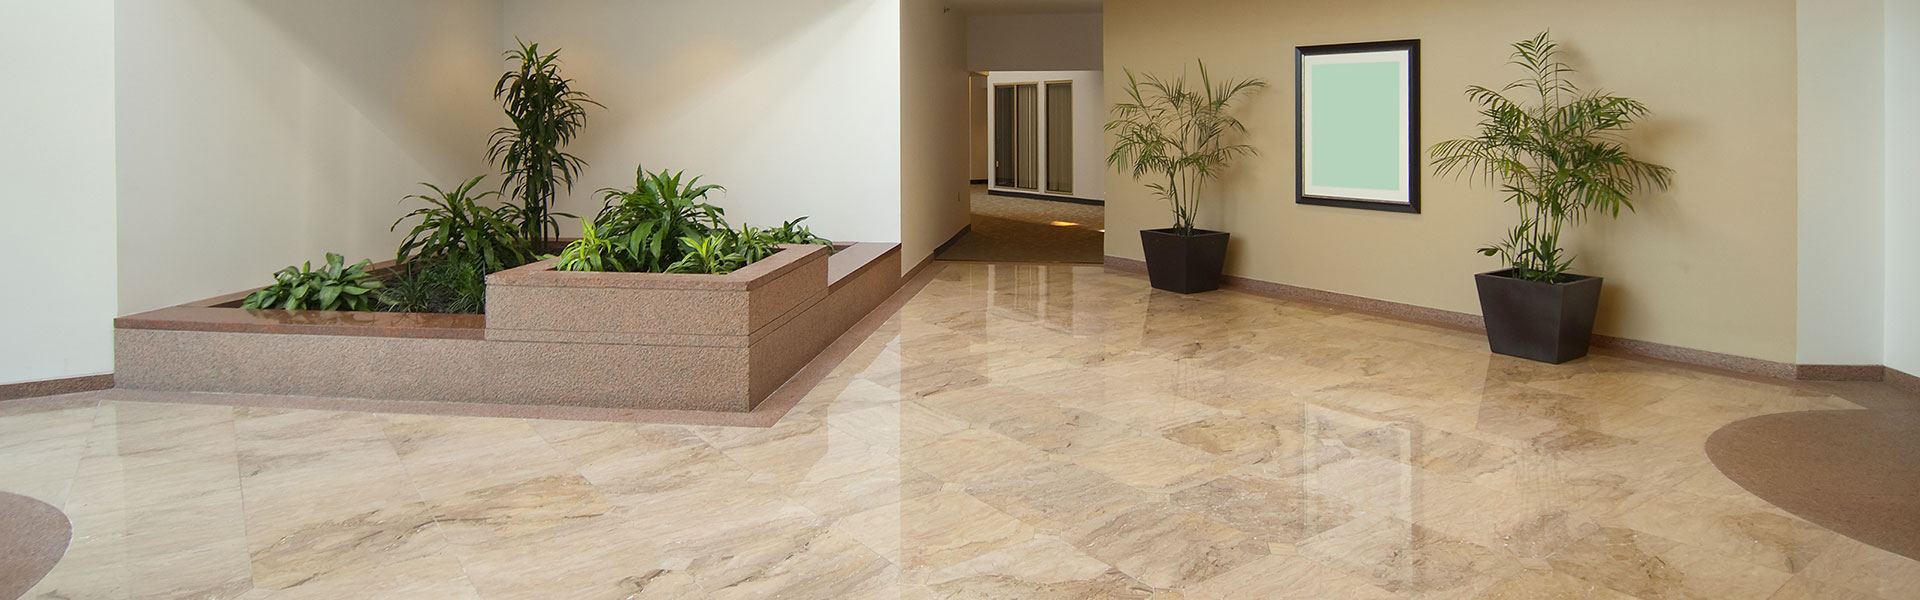 Tile West Inc Installation For Marin And Sonoma County